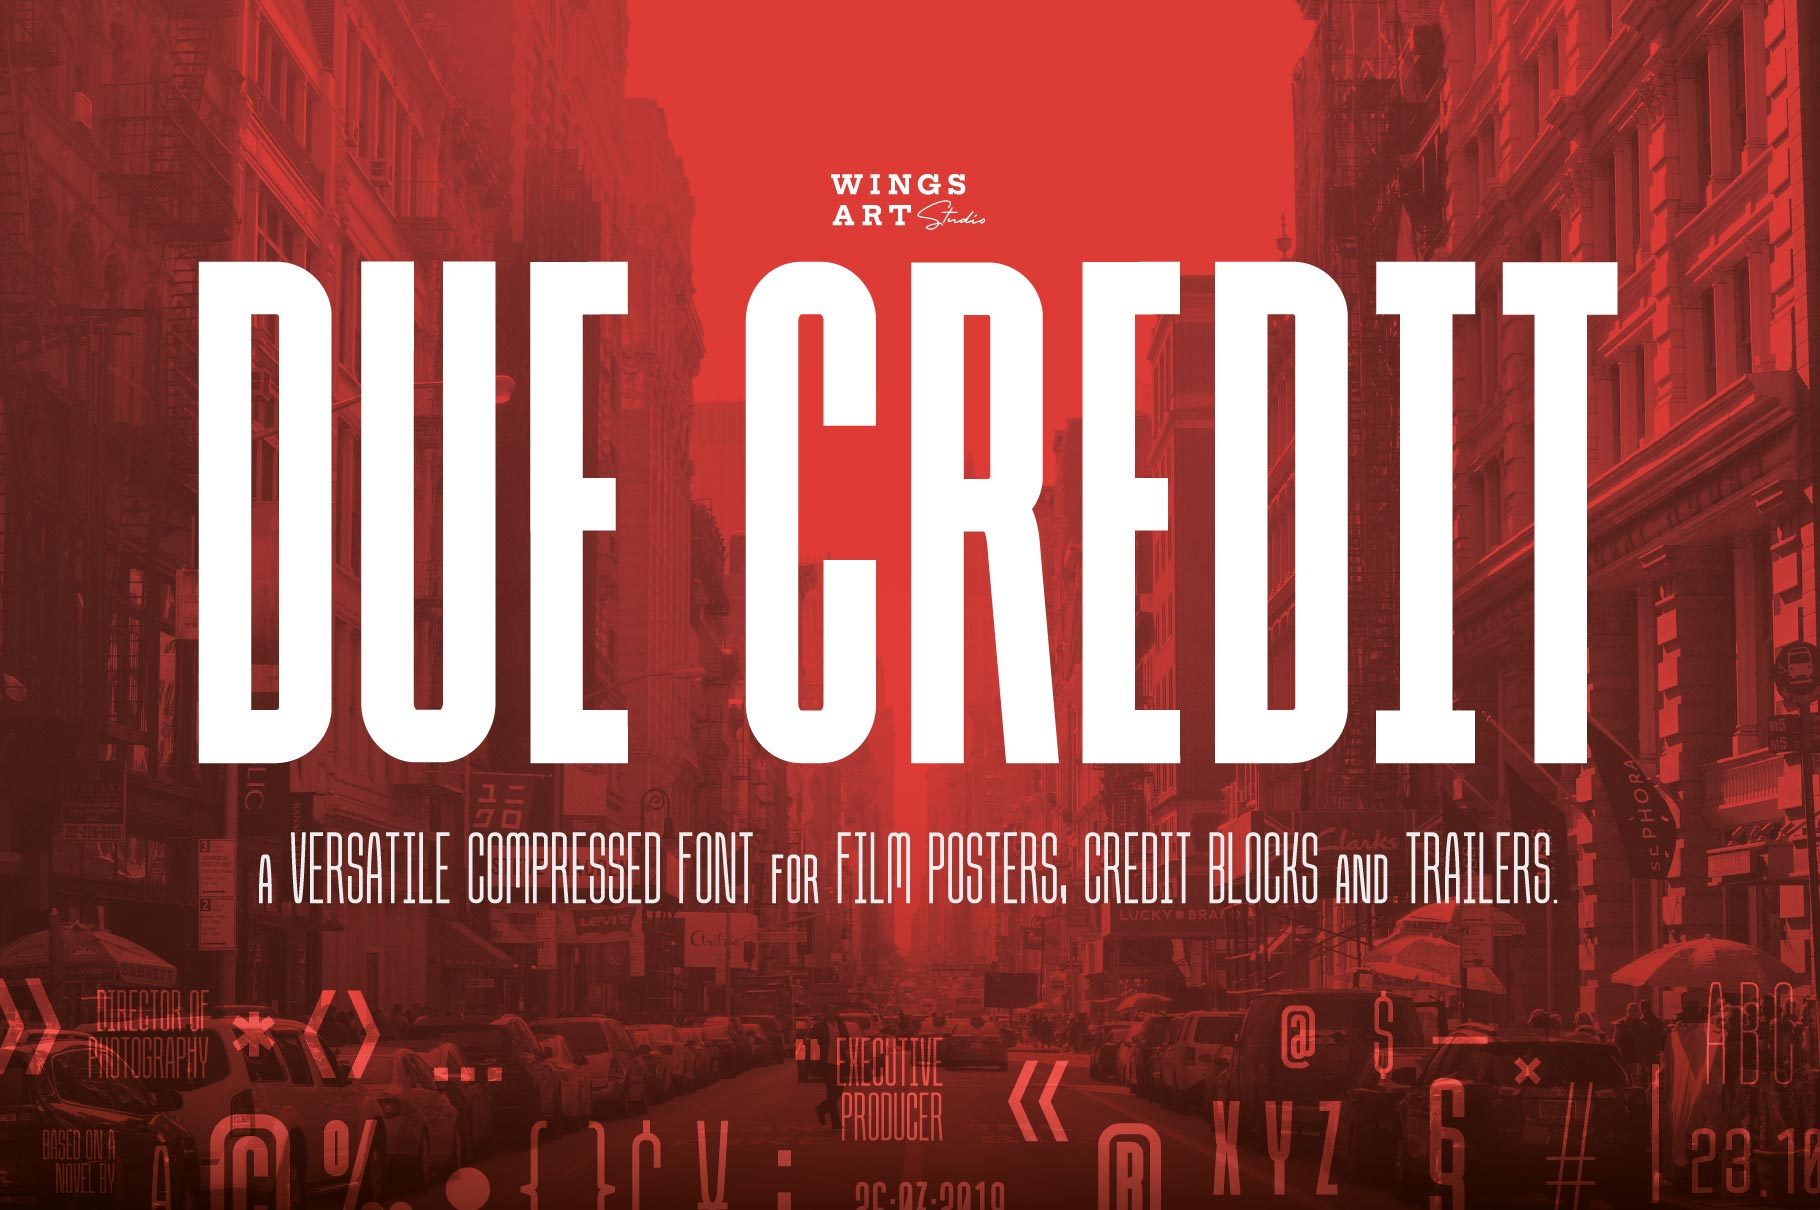 The Film Poster Font - Due Credit by Christopher King